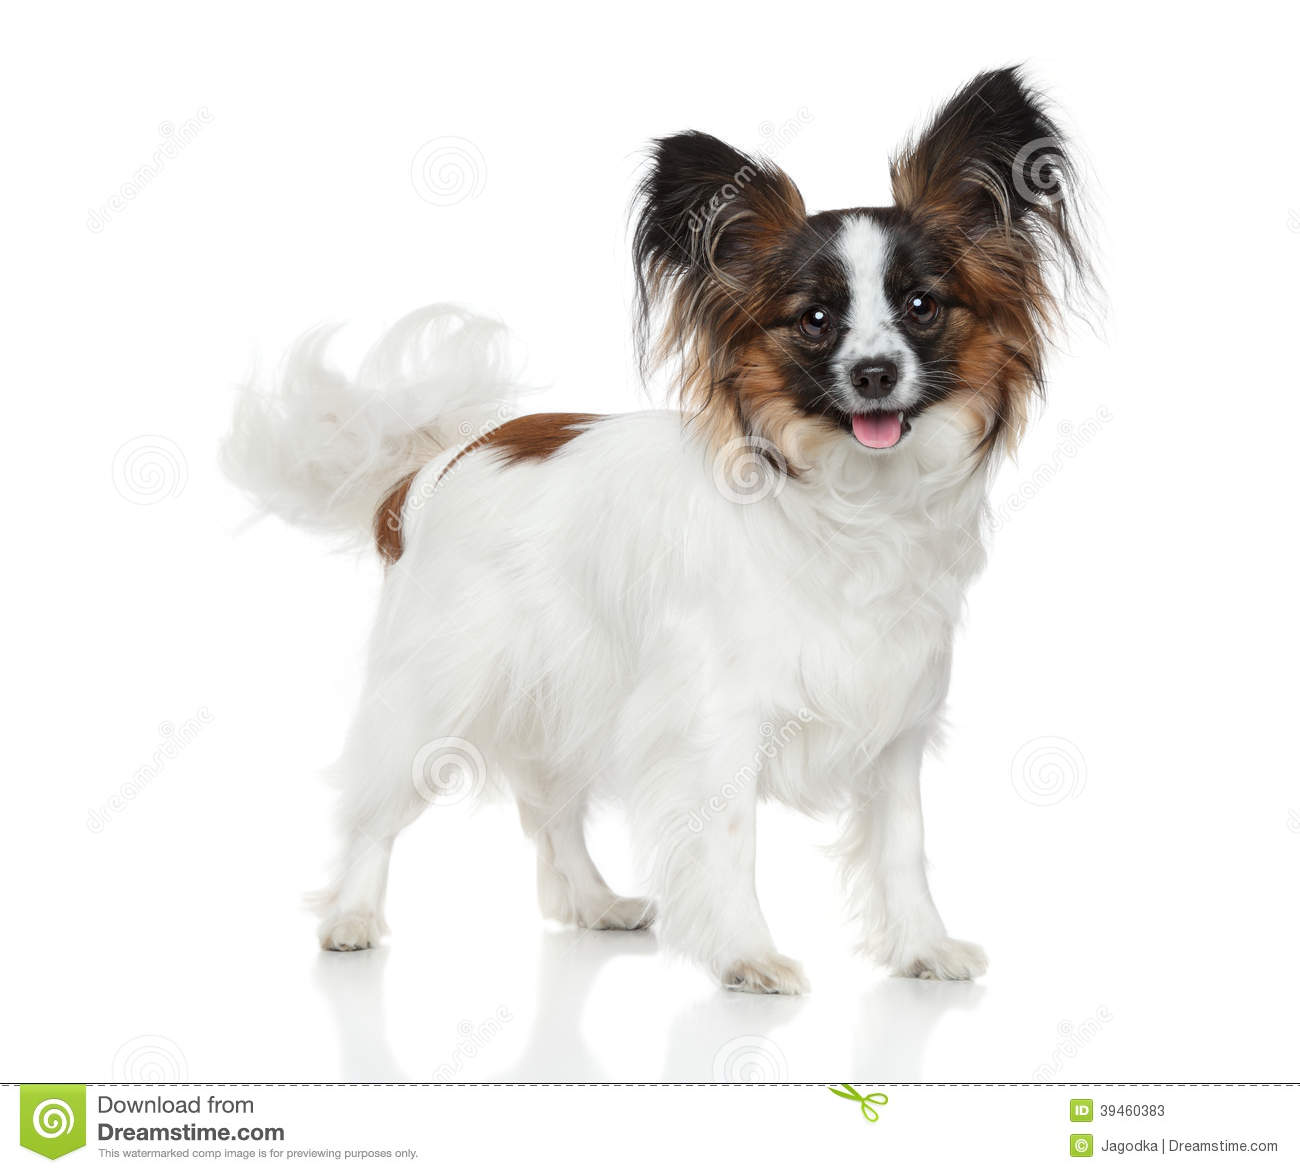 Papillonhond (Continentaal Toy Spaniel)